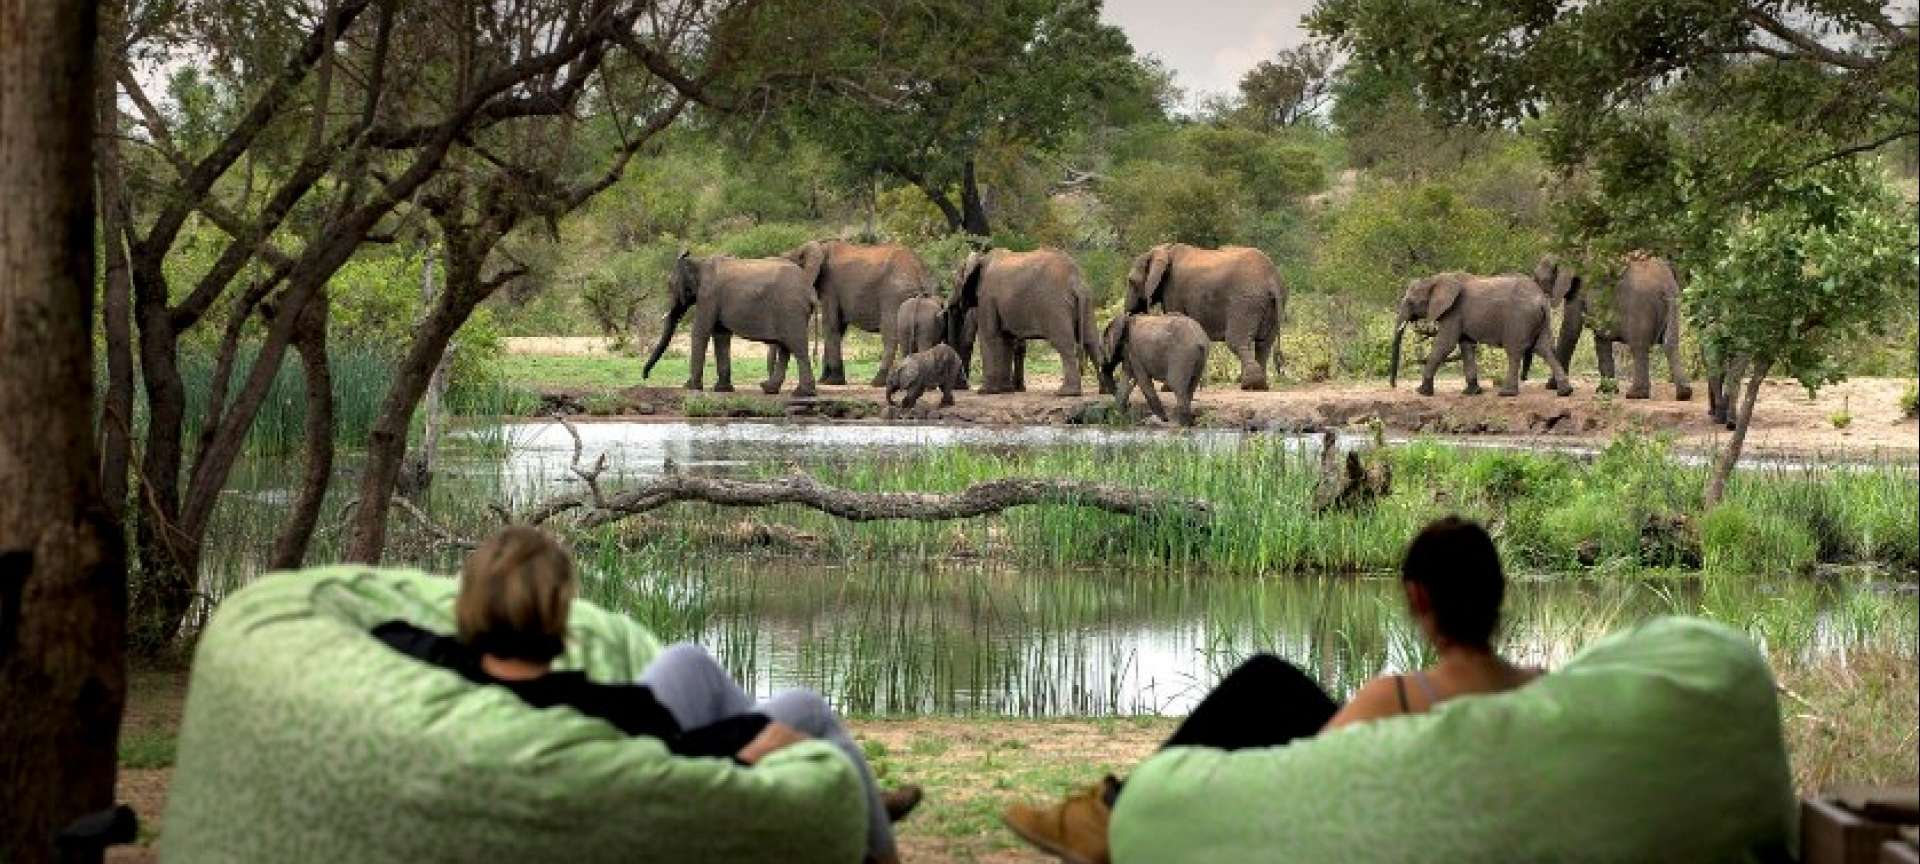 Timbavati Game Reserve - Africa Wildlife Safaris